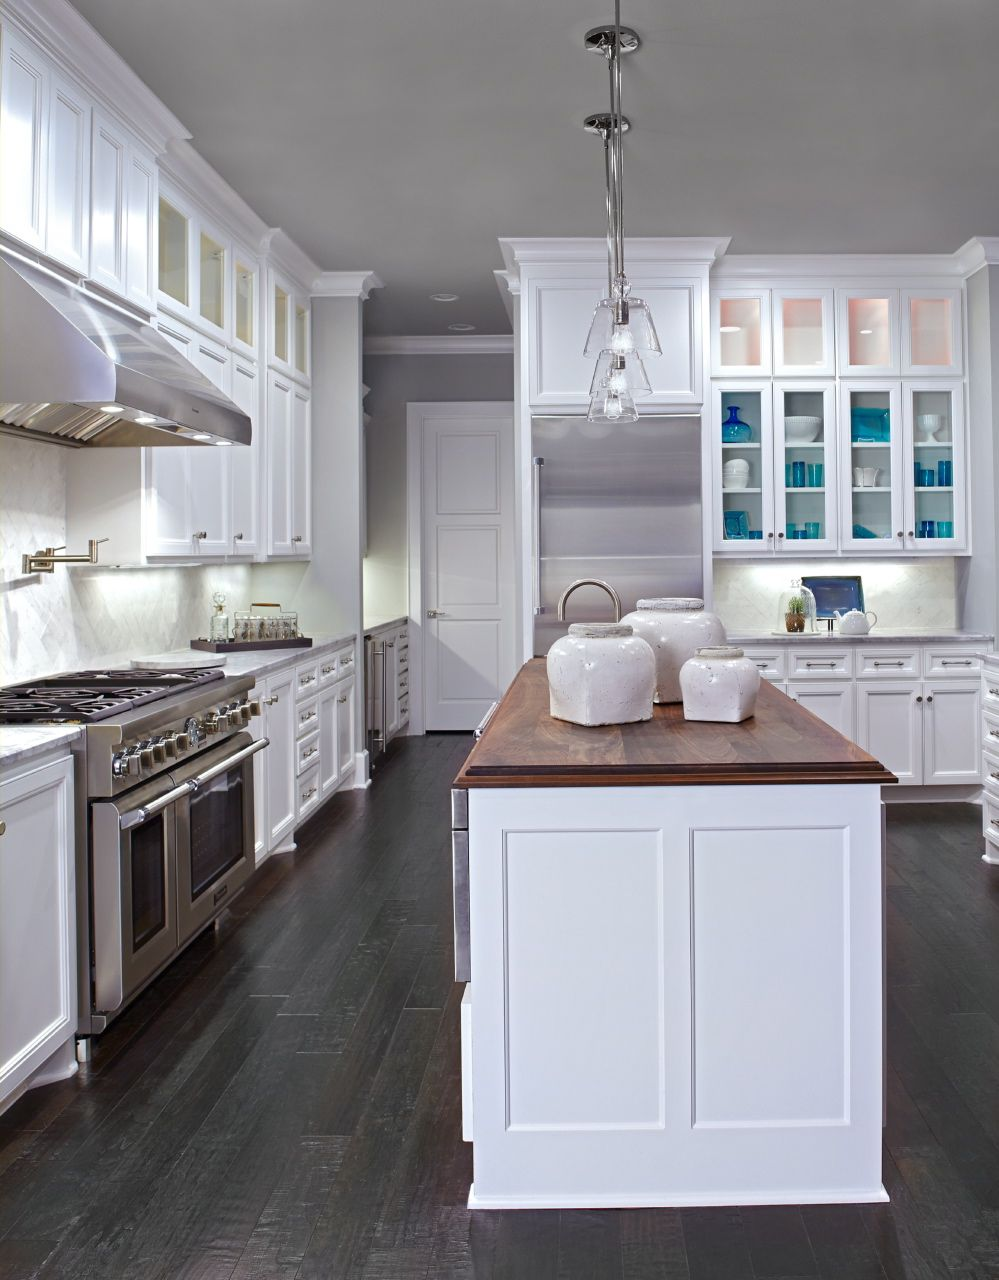 White Cabinets Dark Wood Floors Countertop In Walnut On Center Island